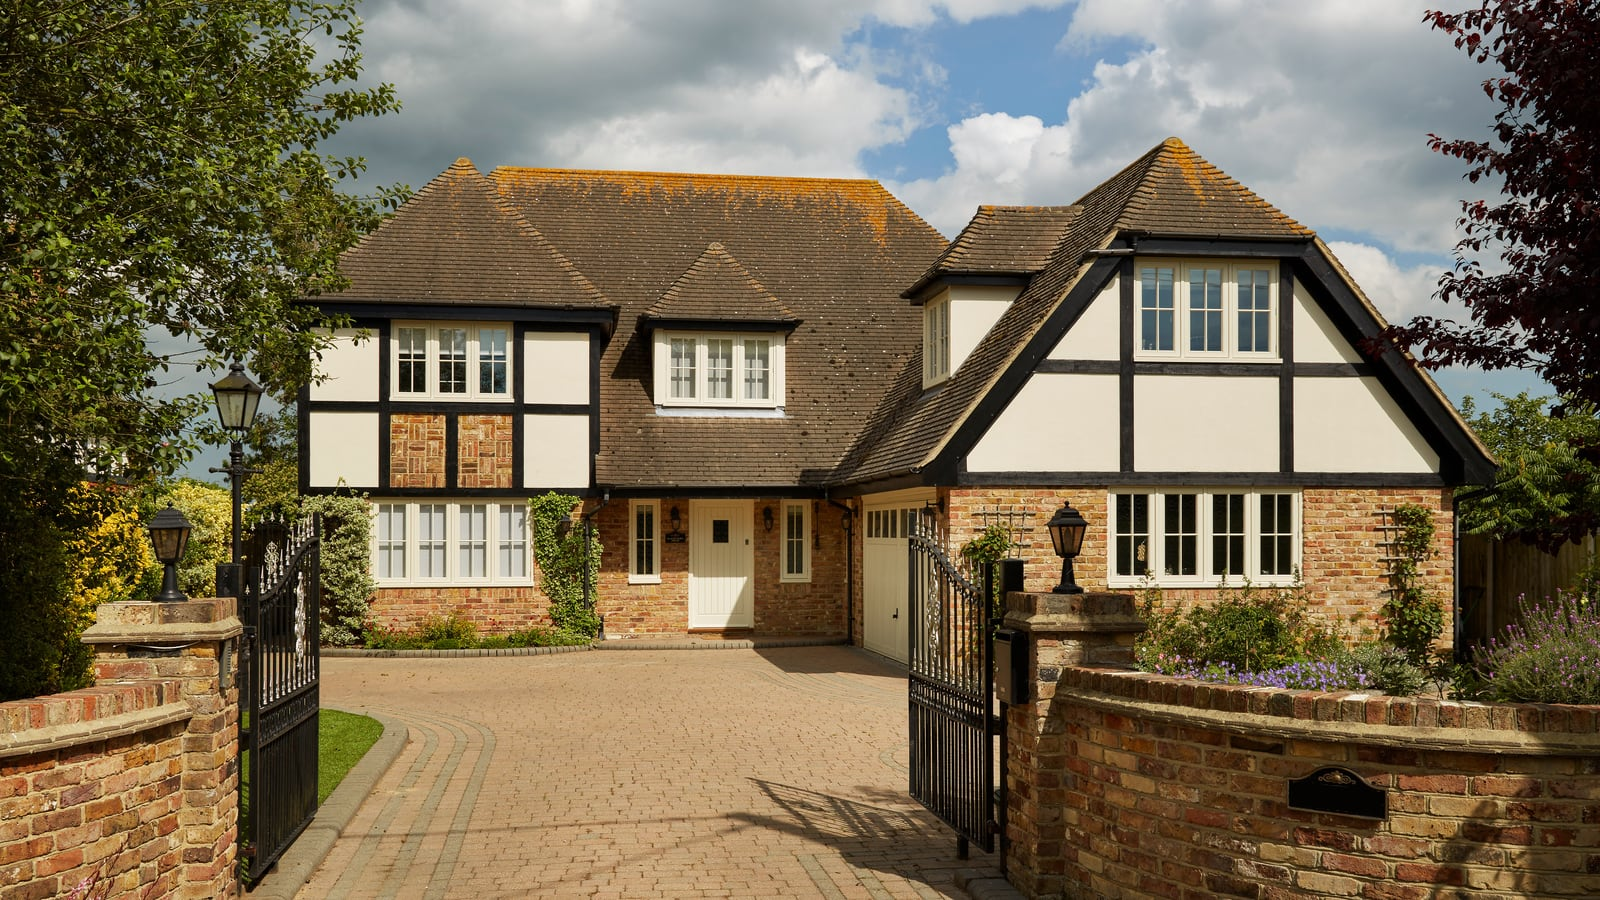 Westbury Windows & Joinery was selected for our traditional design and outstanding performance.